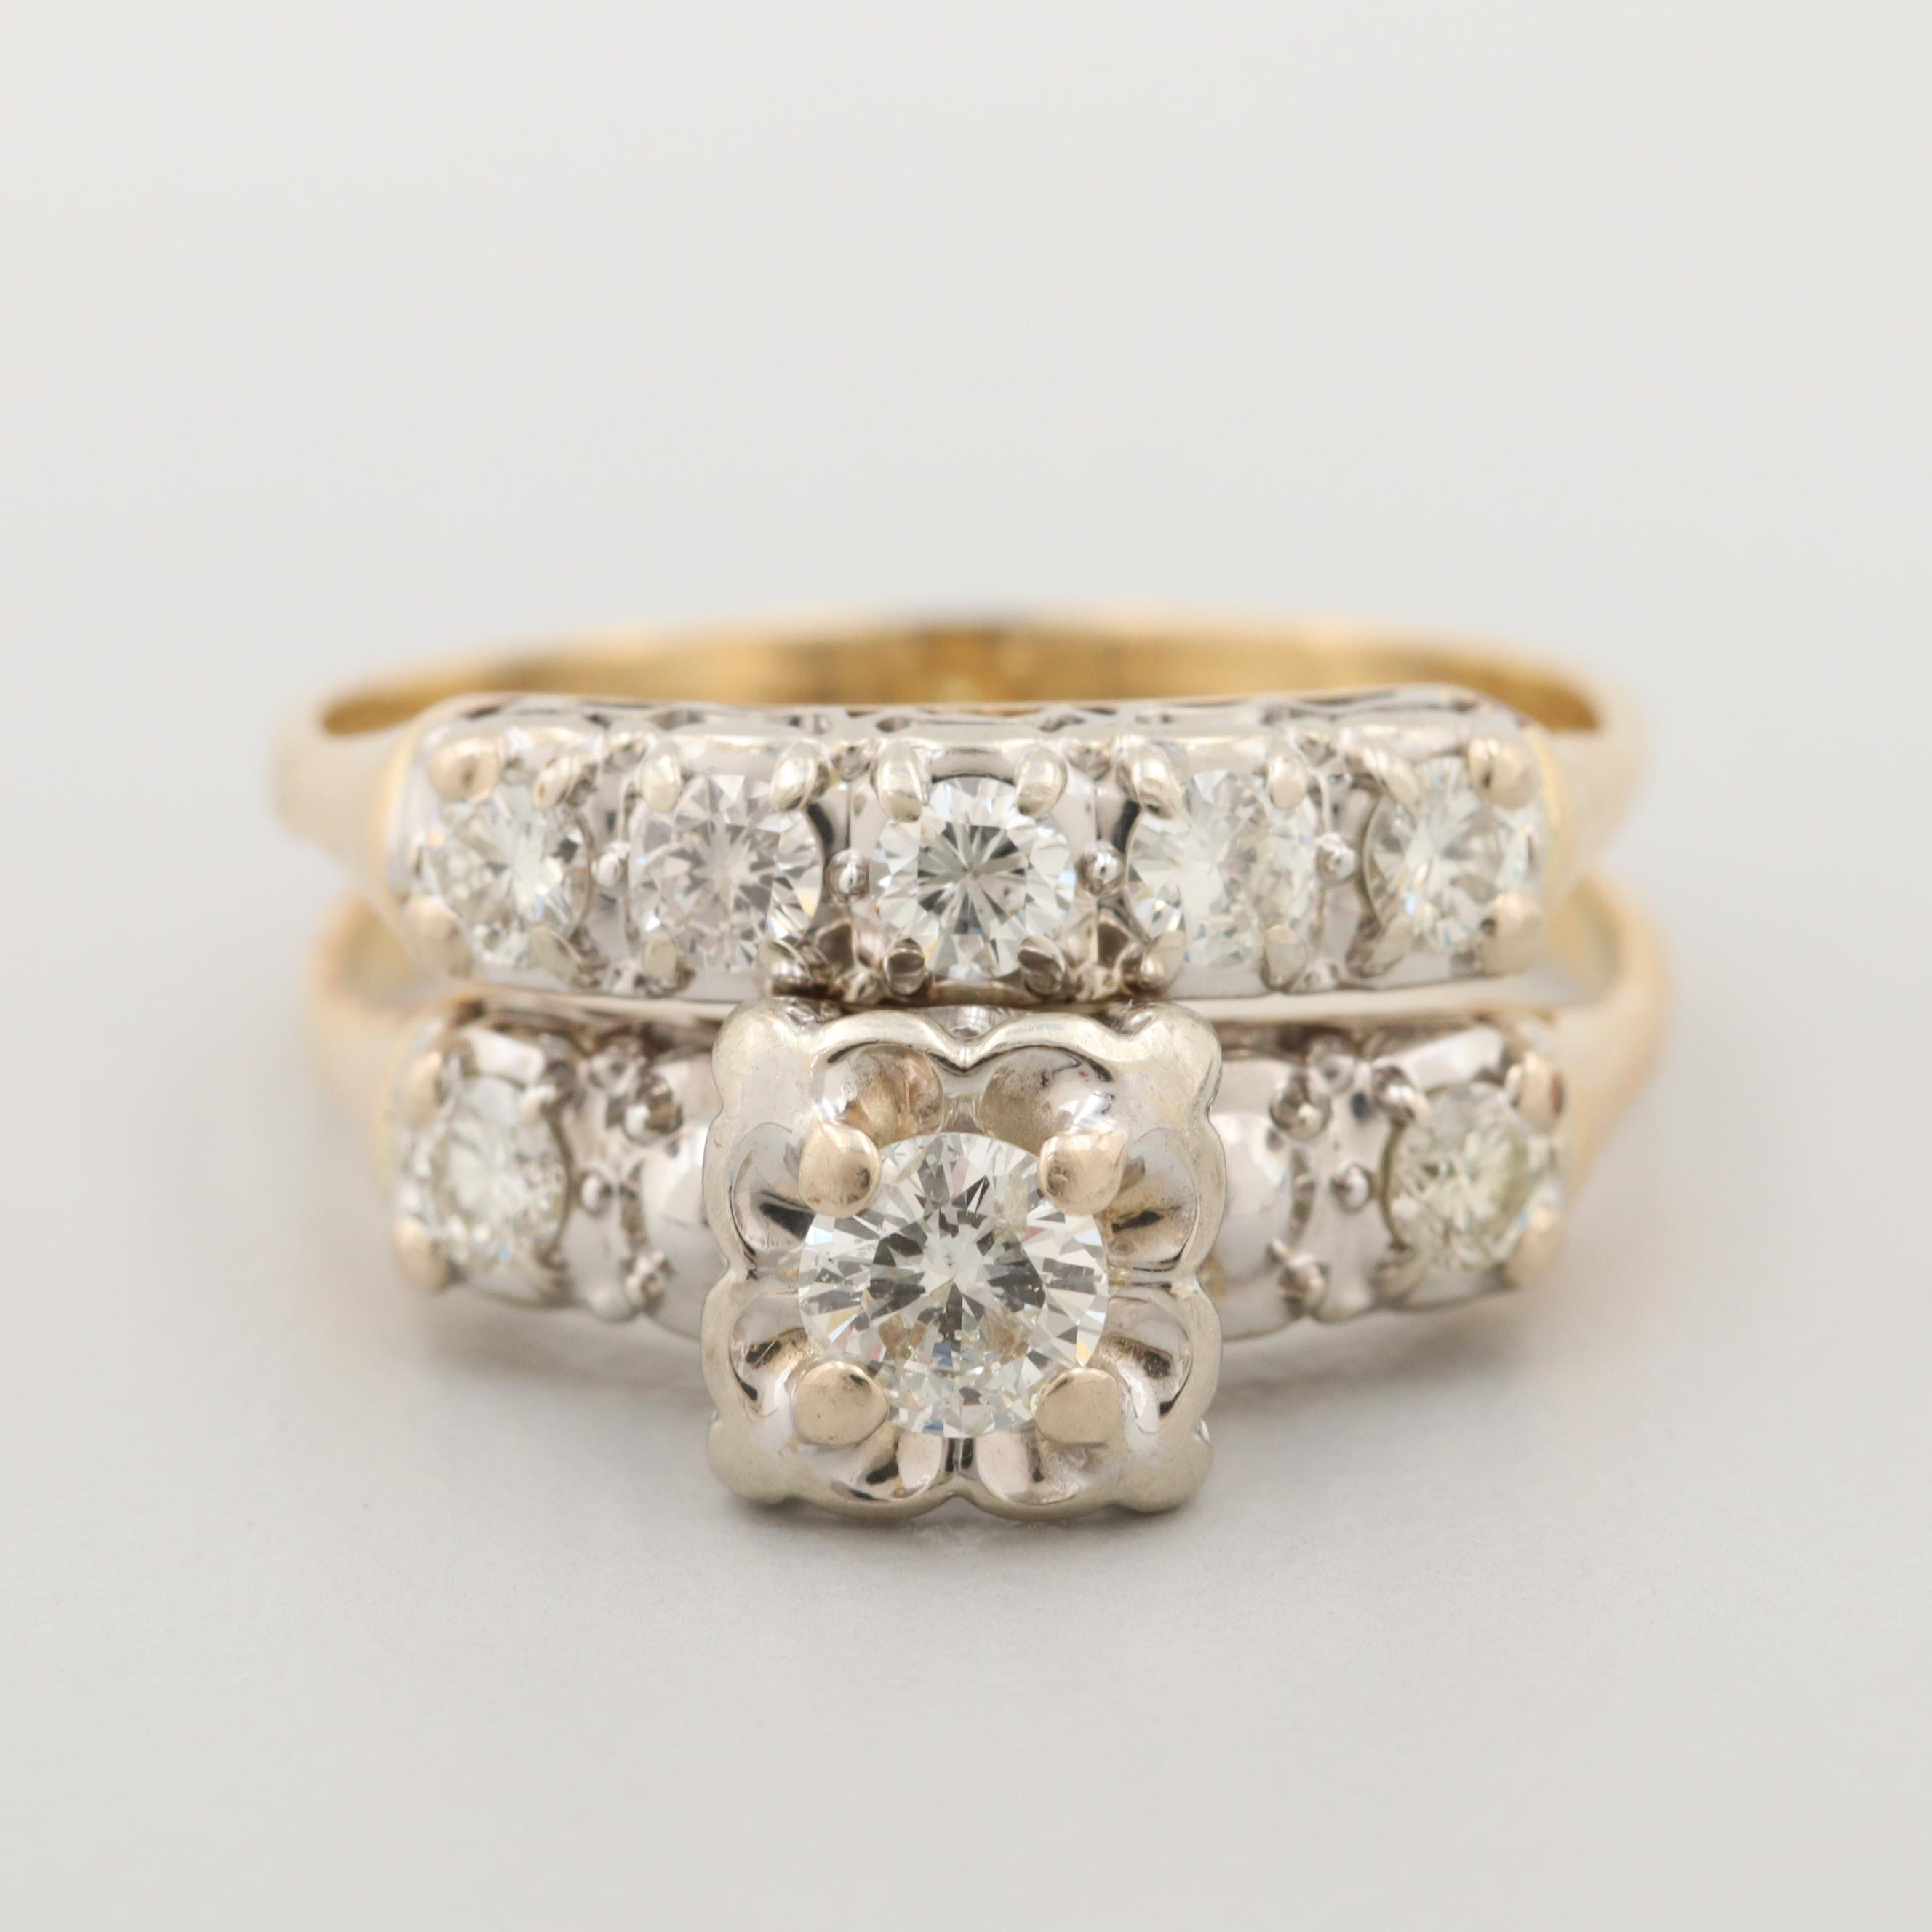 Vintage 14K Yellow Gold Diamond Bridal Ring with White Gold Accent